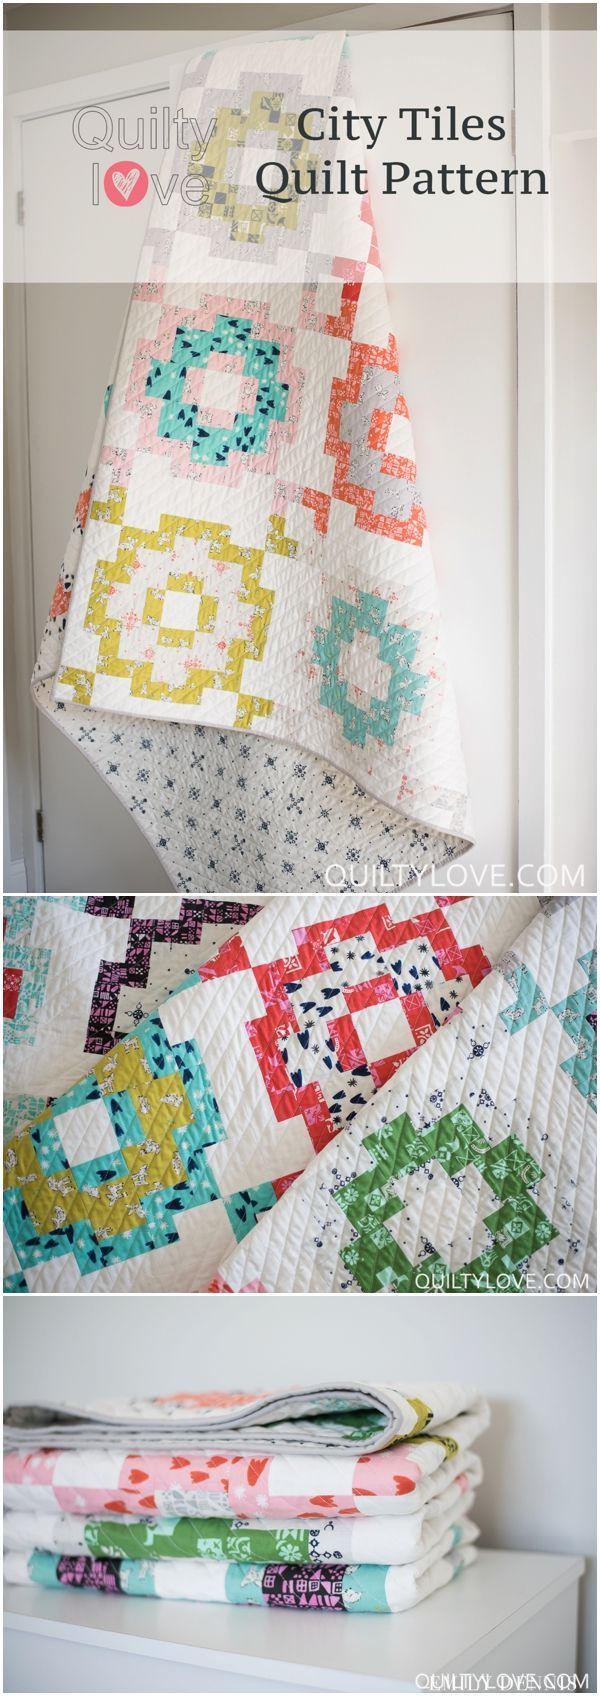 City Tiles Quilt pattern by Emily of Quilty Love. Modern pattern uses cotton and steel fabrics for a fun and fresh large throw size quilt. Click through for more pics of this quilt! www.quiltylove.com